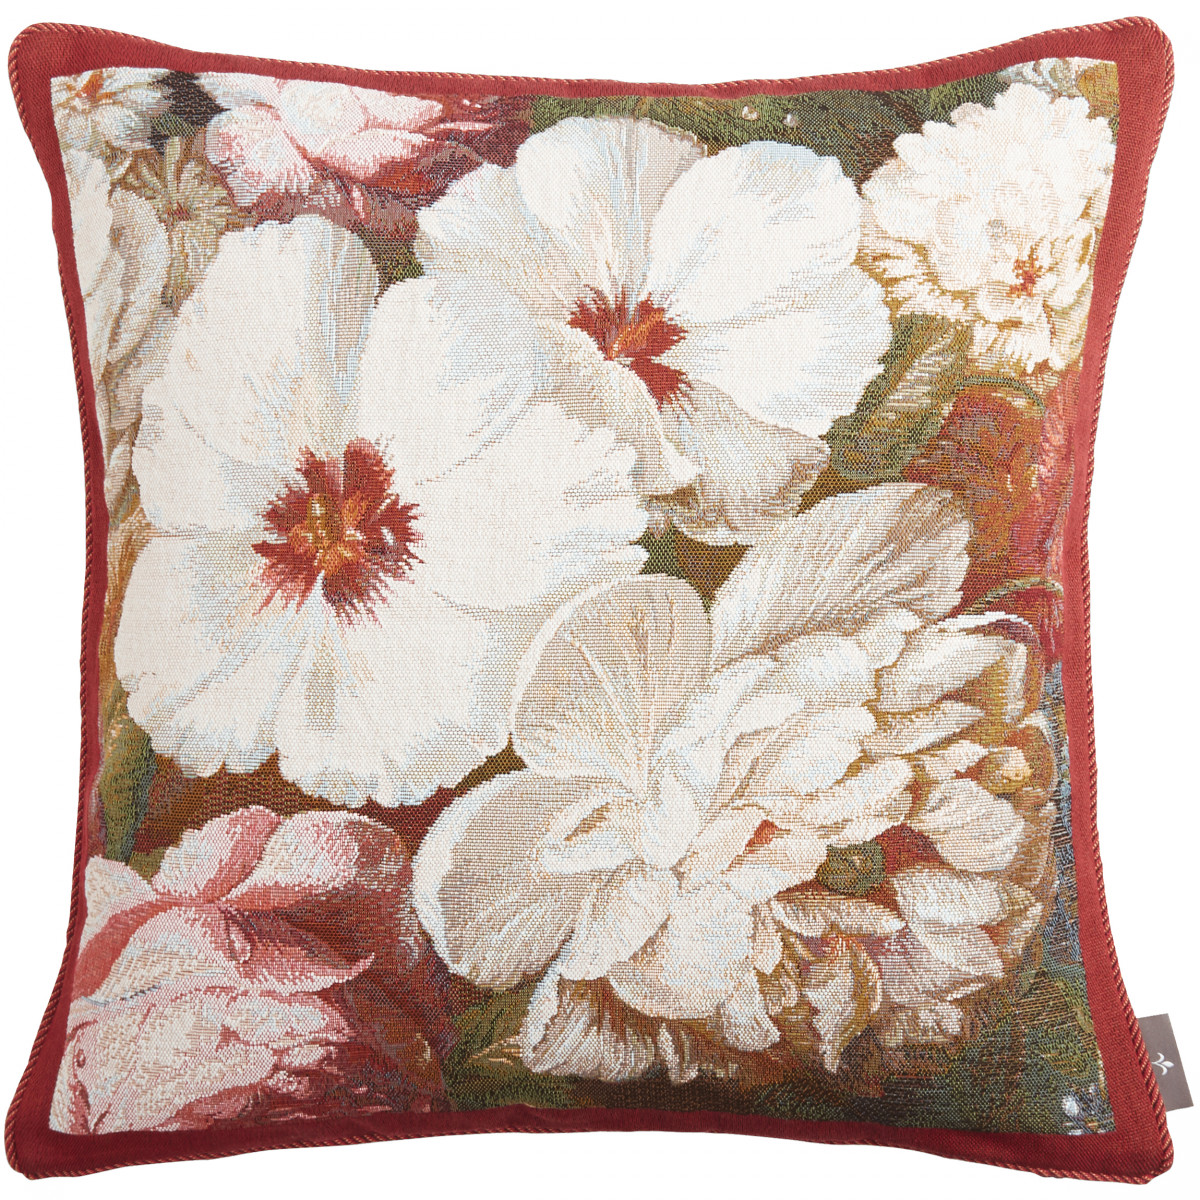 Coussin tapisserie hibiscus pivoine made in france rouge   50x50